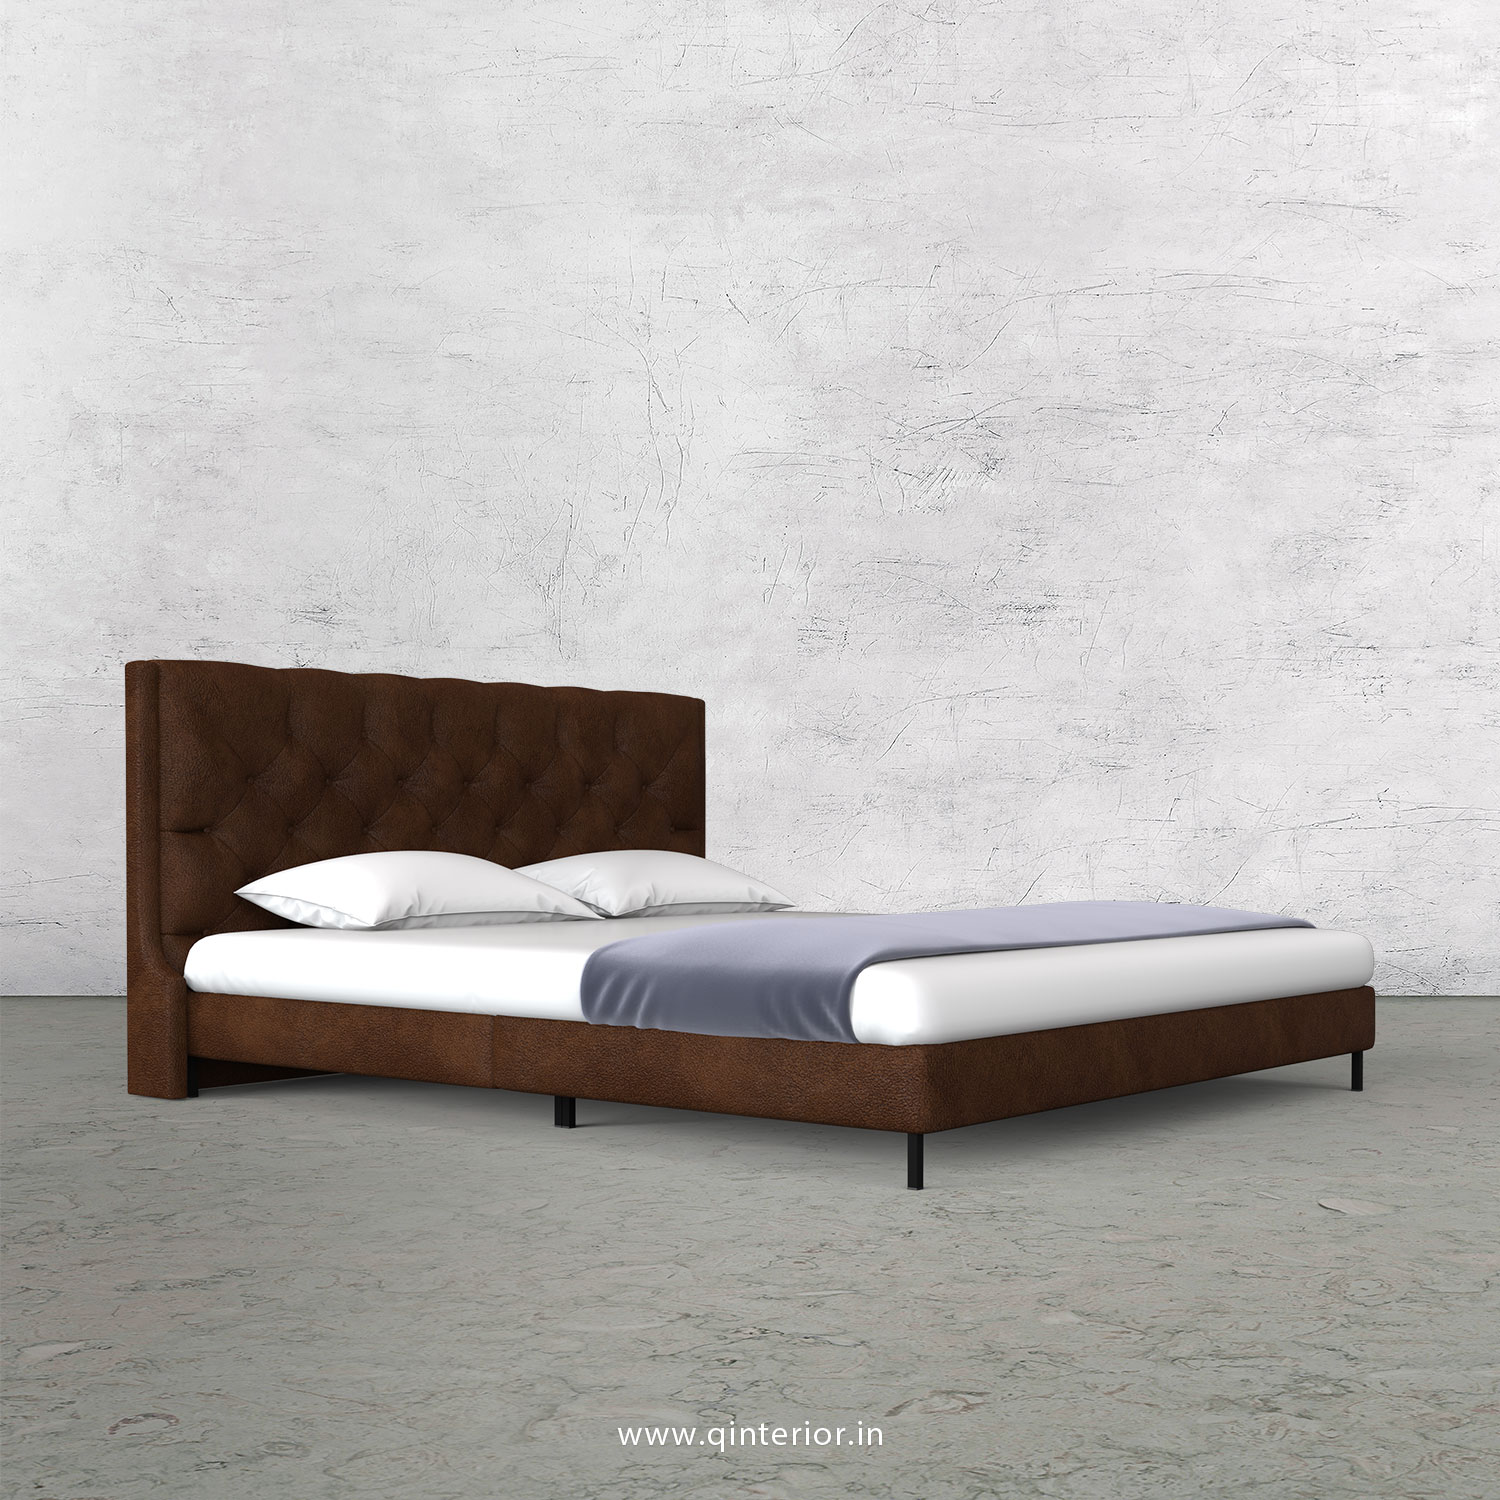 Scorpius Queen Size Bed with Fab Leather Fabric - QBD003 FL09